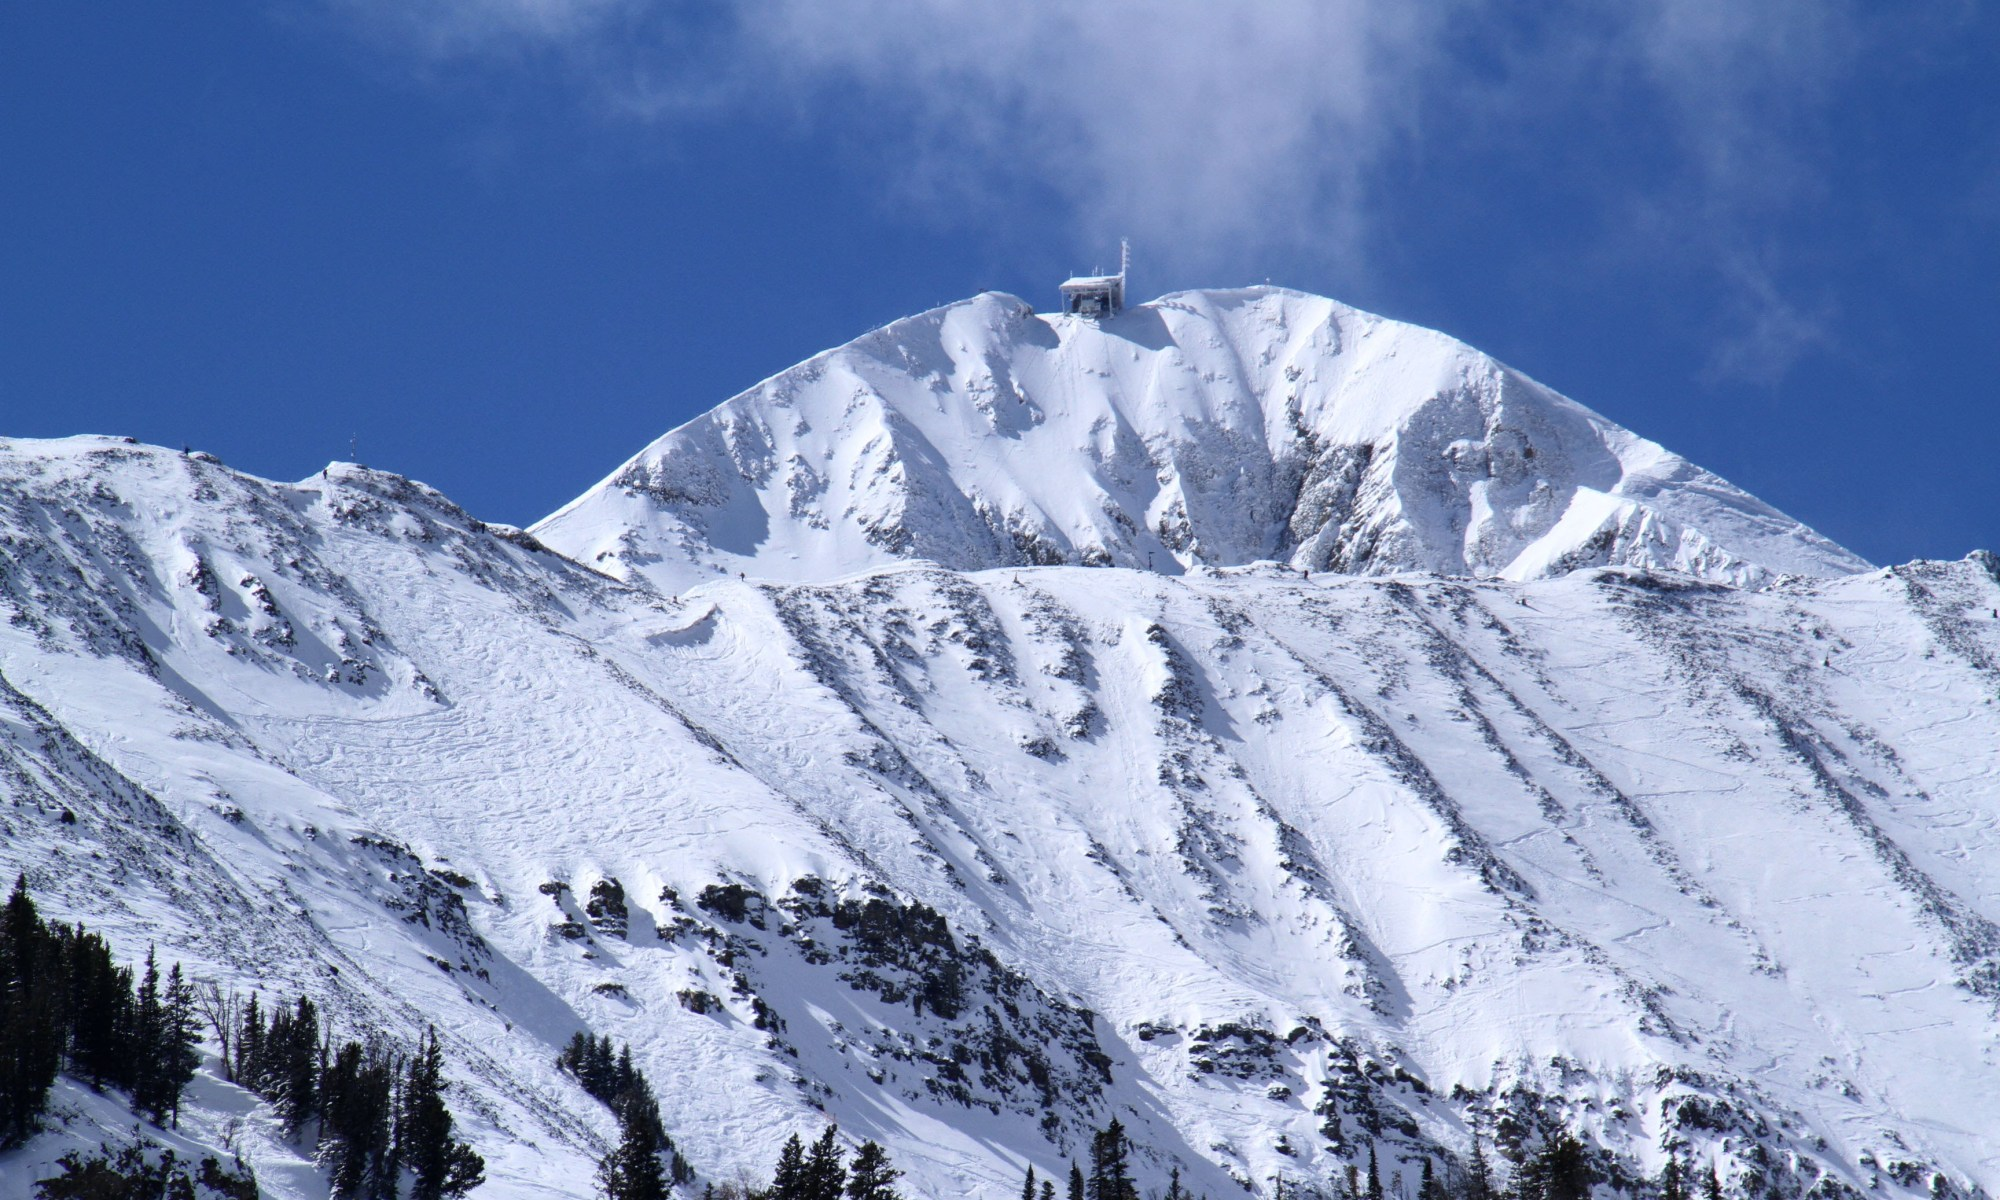 Big Sky Resort in Montana joins the Mountain Collective 2018-19 ski pass.